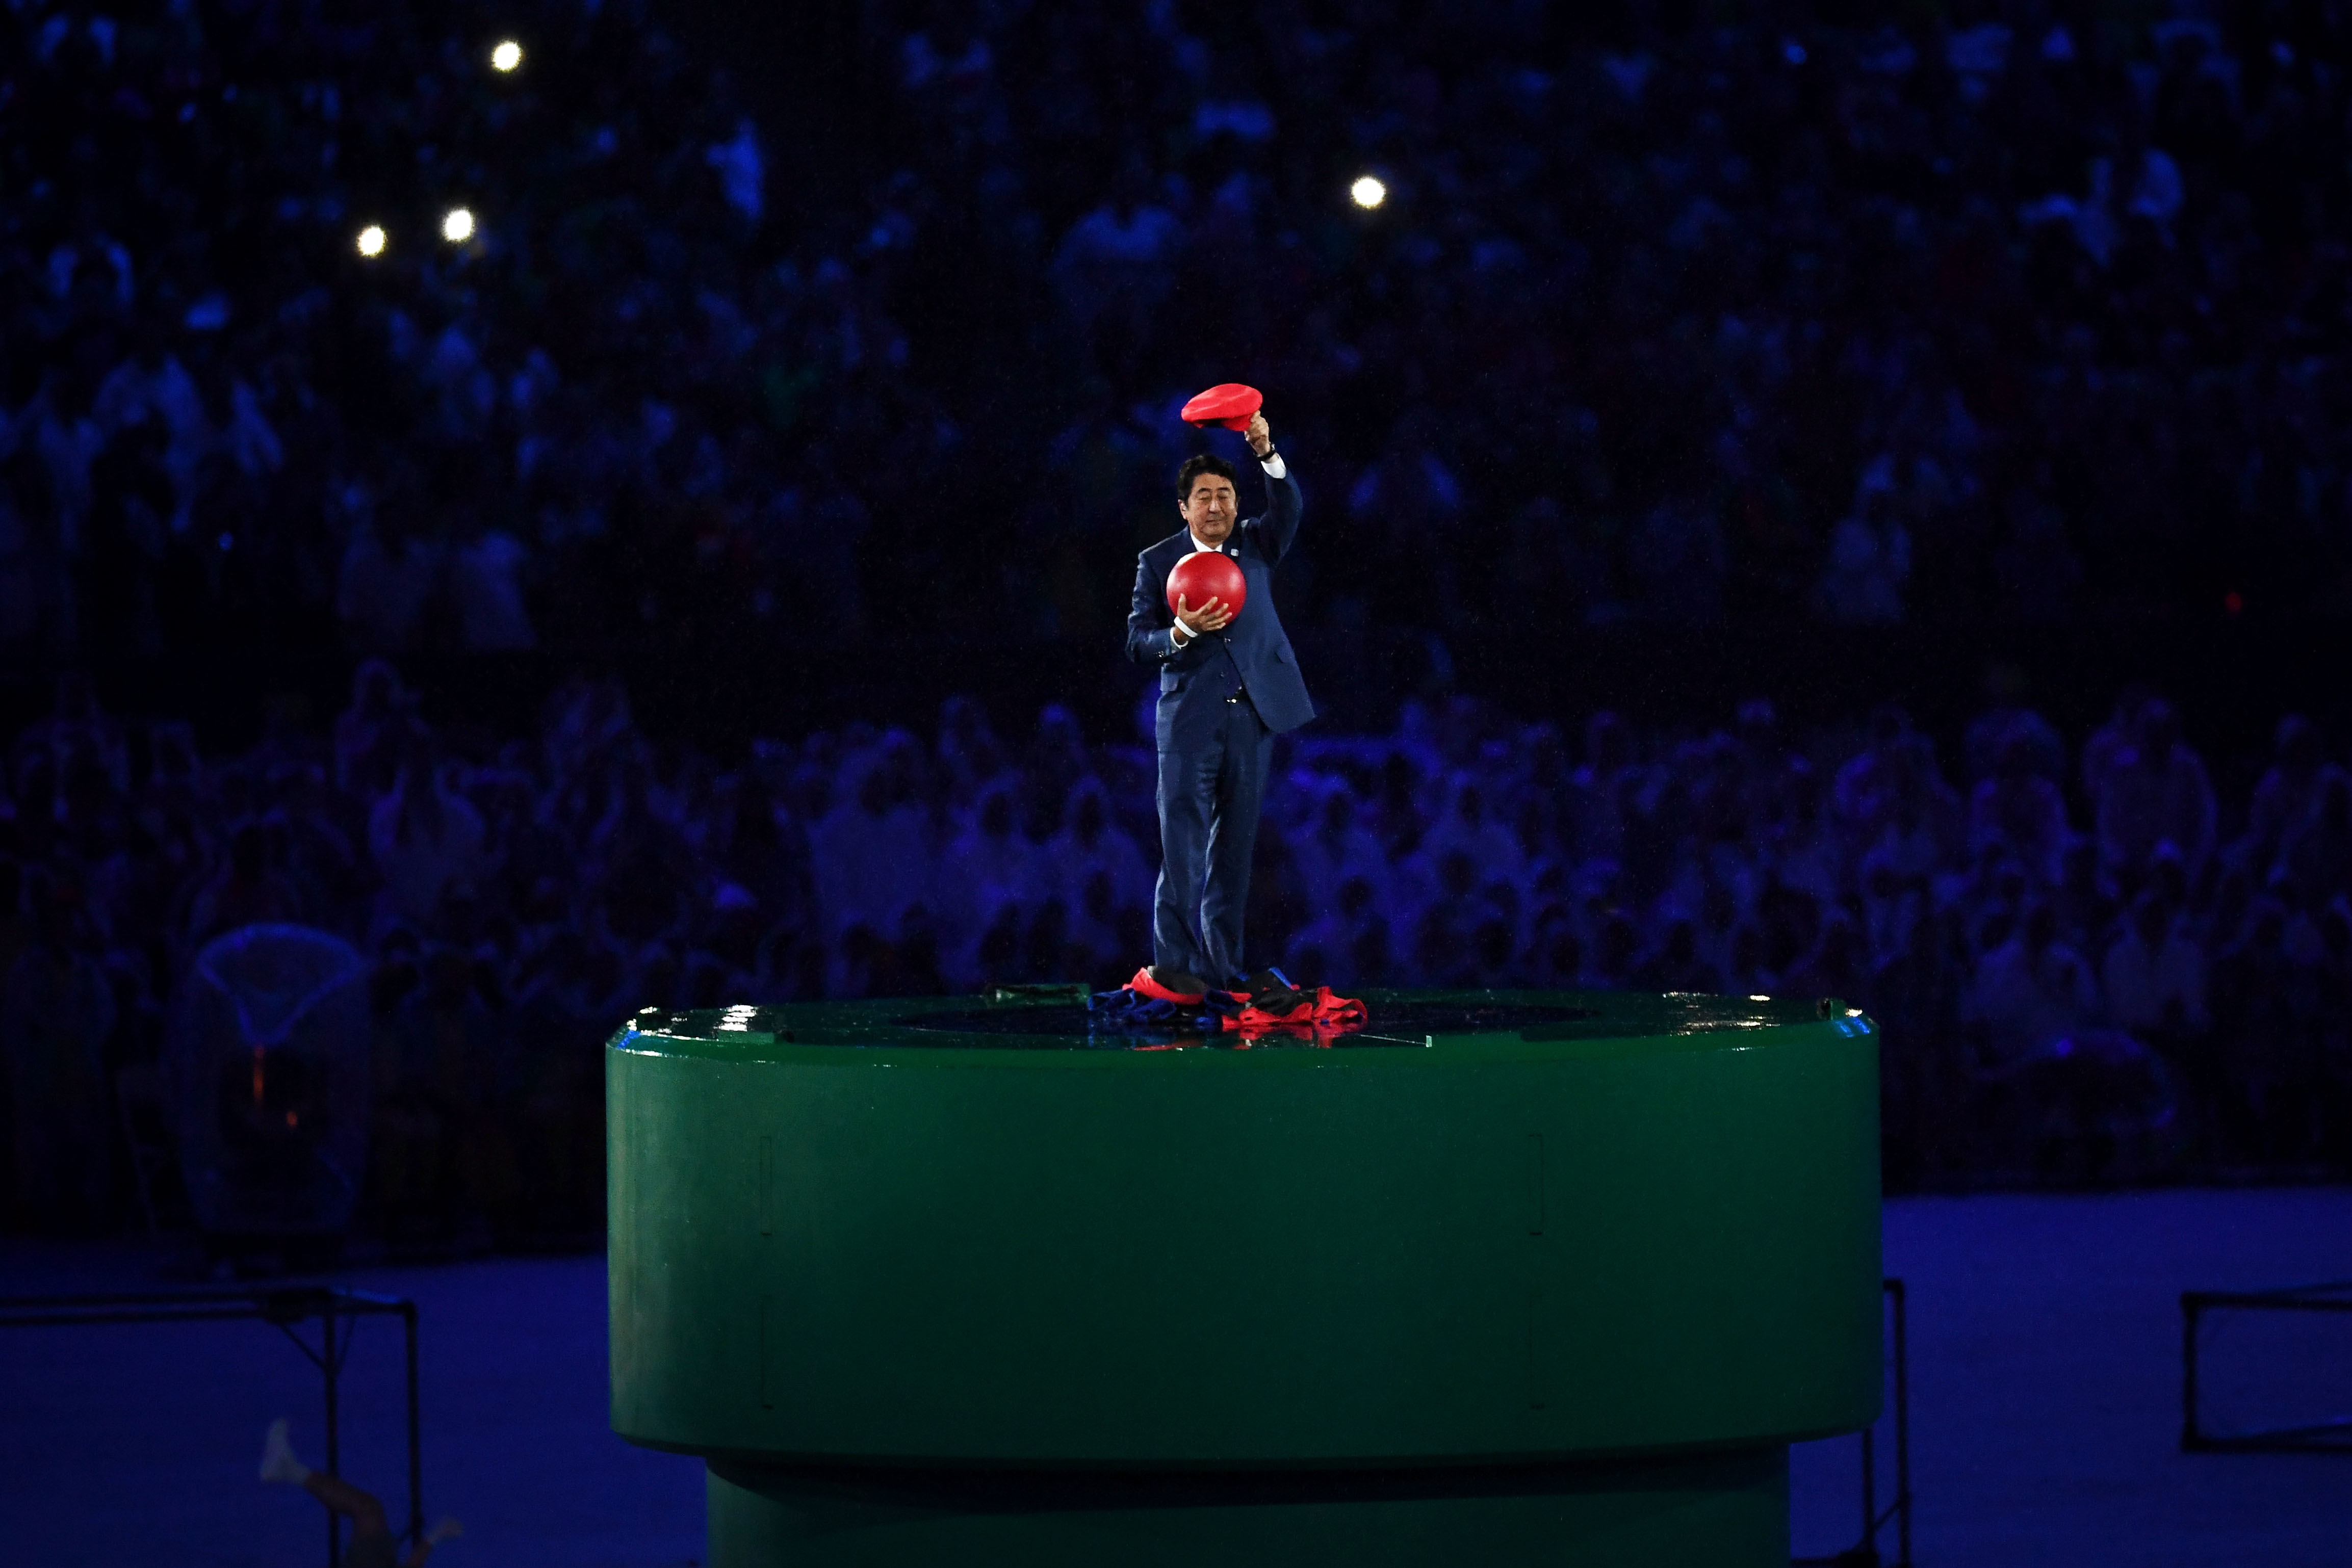 RIO DE JANEIRO BRAZIL- AUGUST 21 Japan Prime Minister Shinzo Abe appears during the'Love Sport Tokyo 2020 segment during the Closing Ceremony on Day 16 of the Rio 2016 Olympic Games at Maracana Stadium